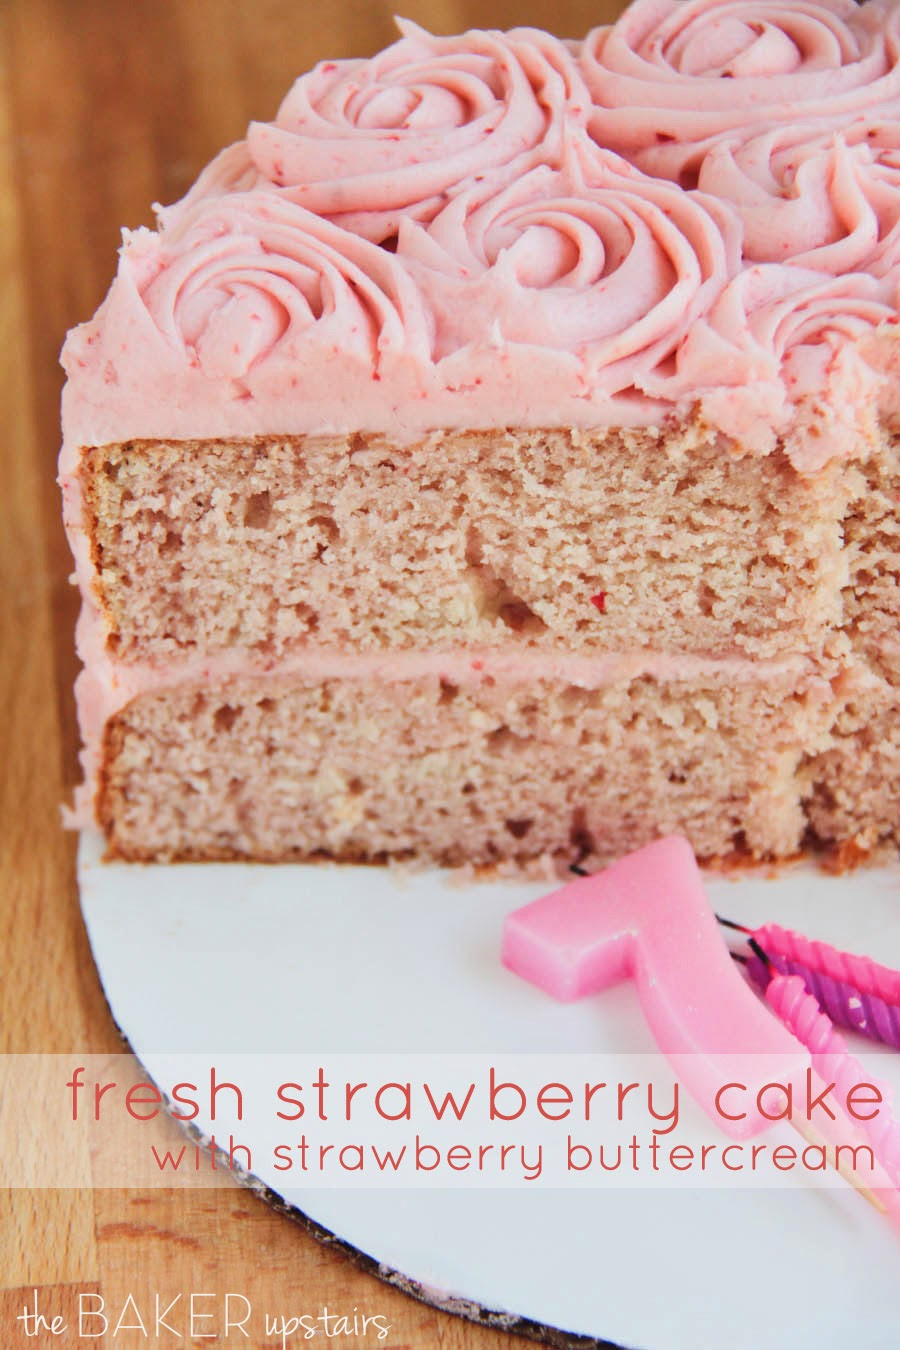 This beautiful and delicious fresh strawberry cake with strawberry buttercream is perfect for any summer celebration!